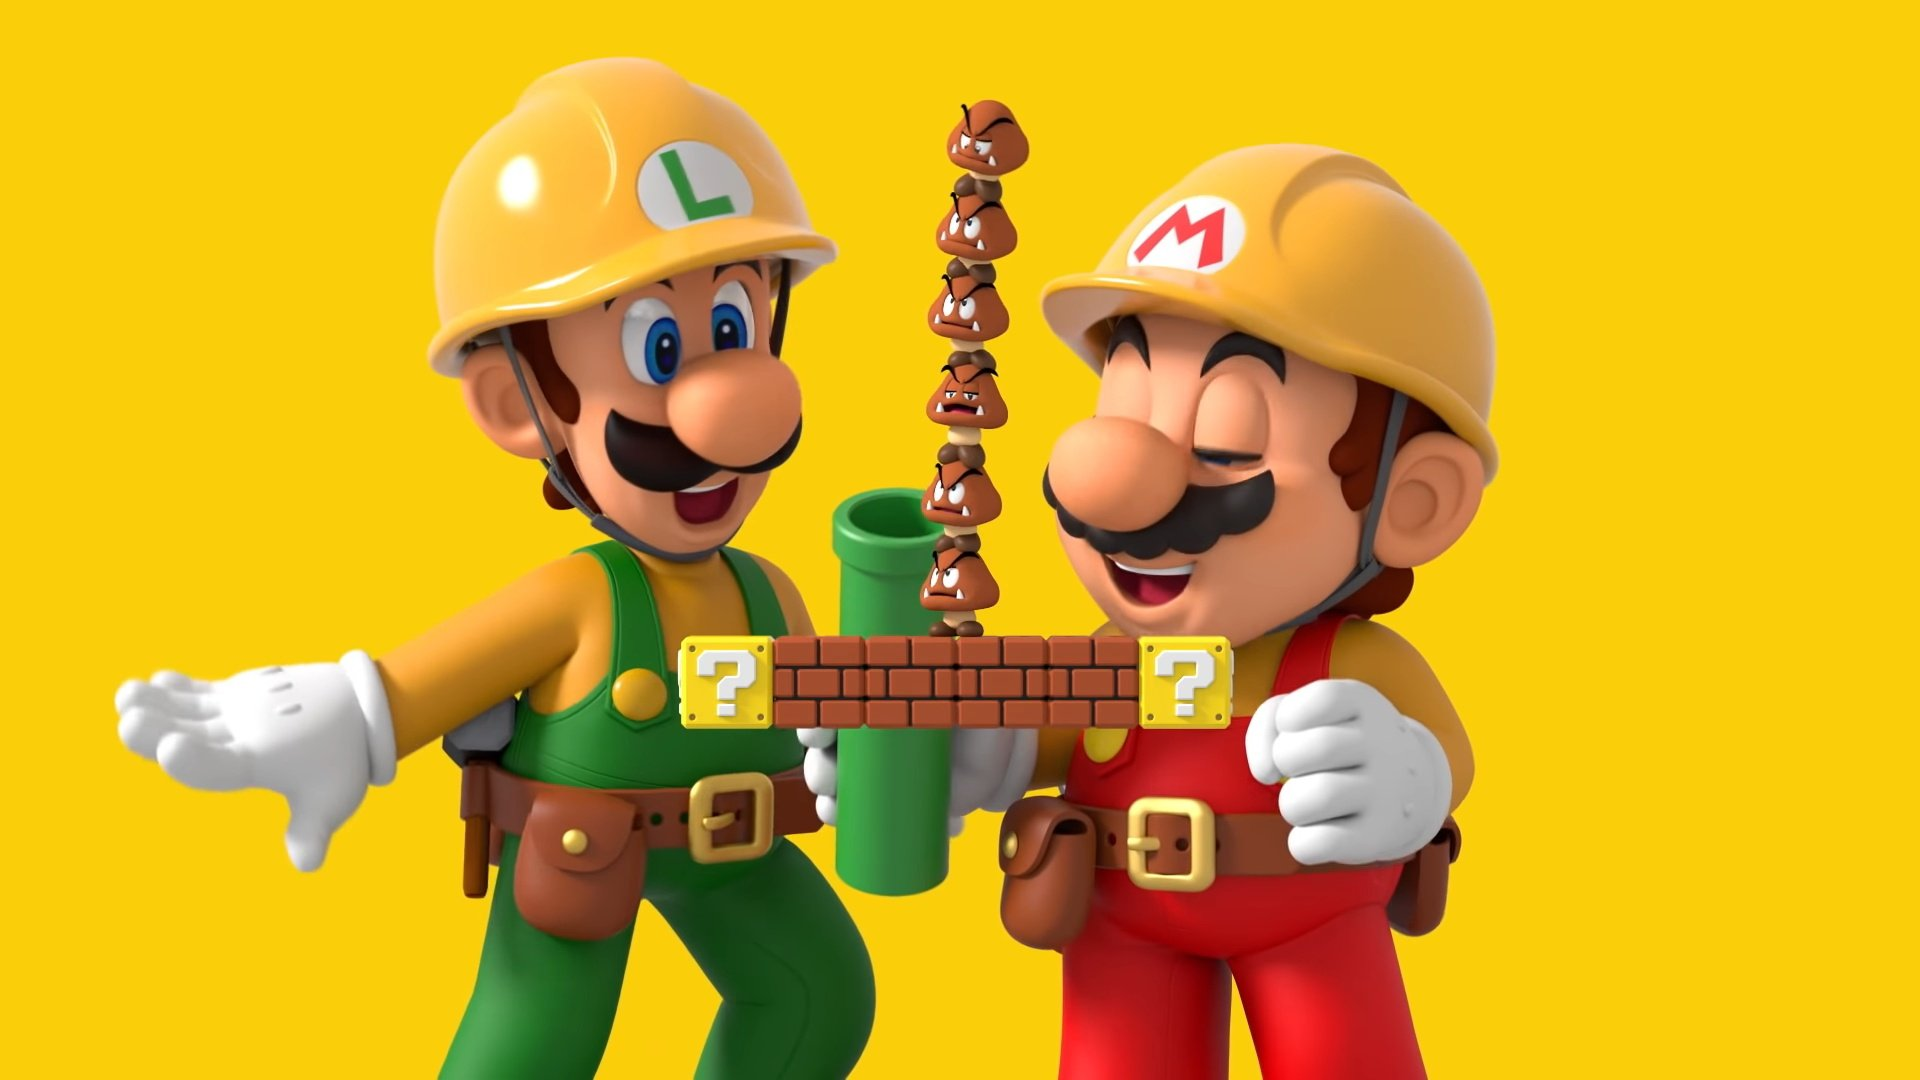 Nearly Impossible Mario Maker Level Played 5 3 Million Times